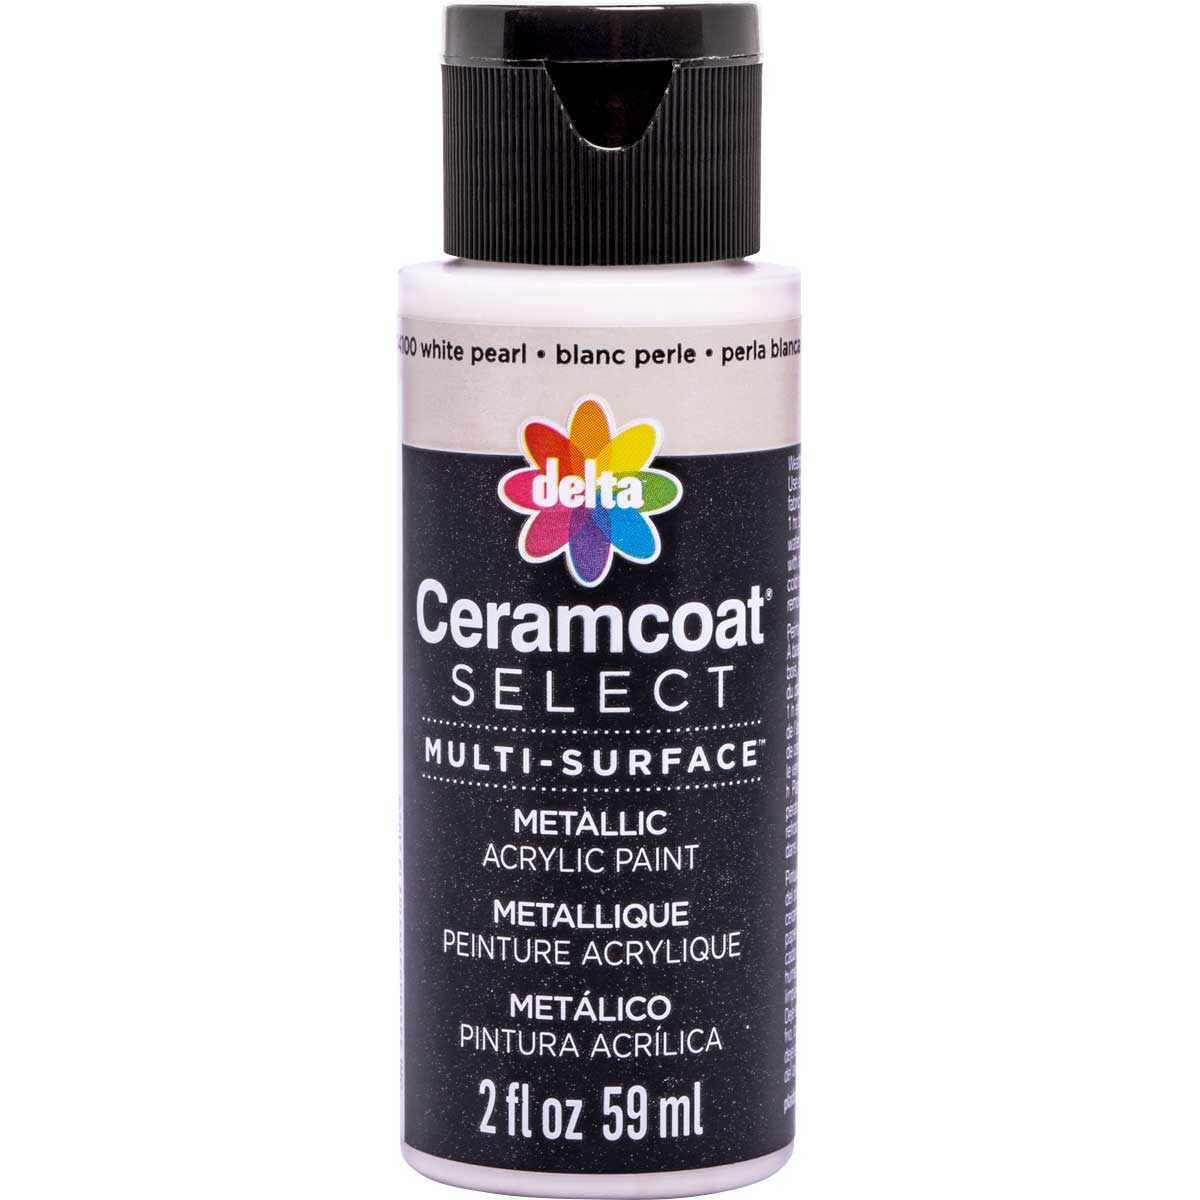 Delta Ceramcoat ® Select Multi-Surface Acrylic Paint - Metallic - White Pearl, 2 oz.